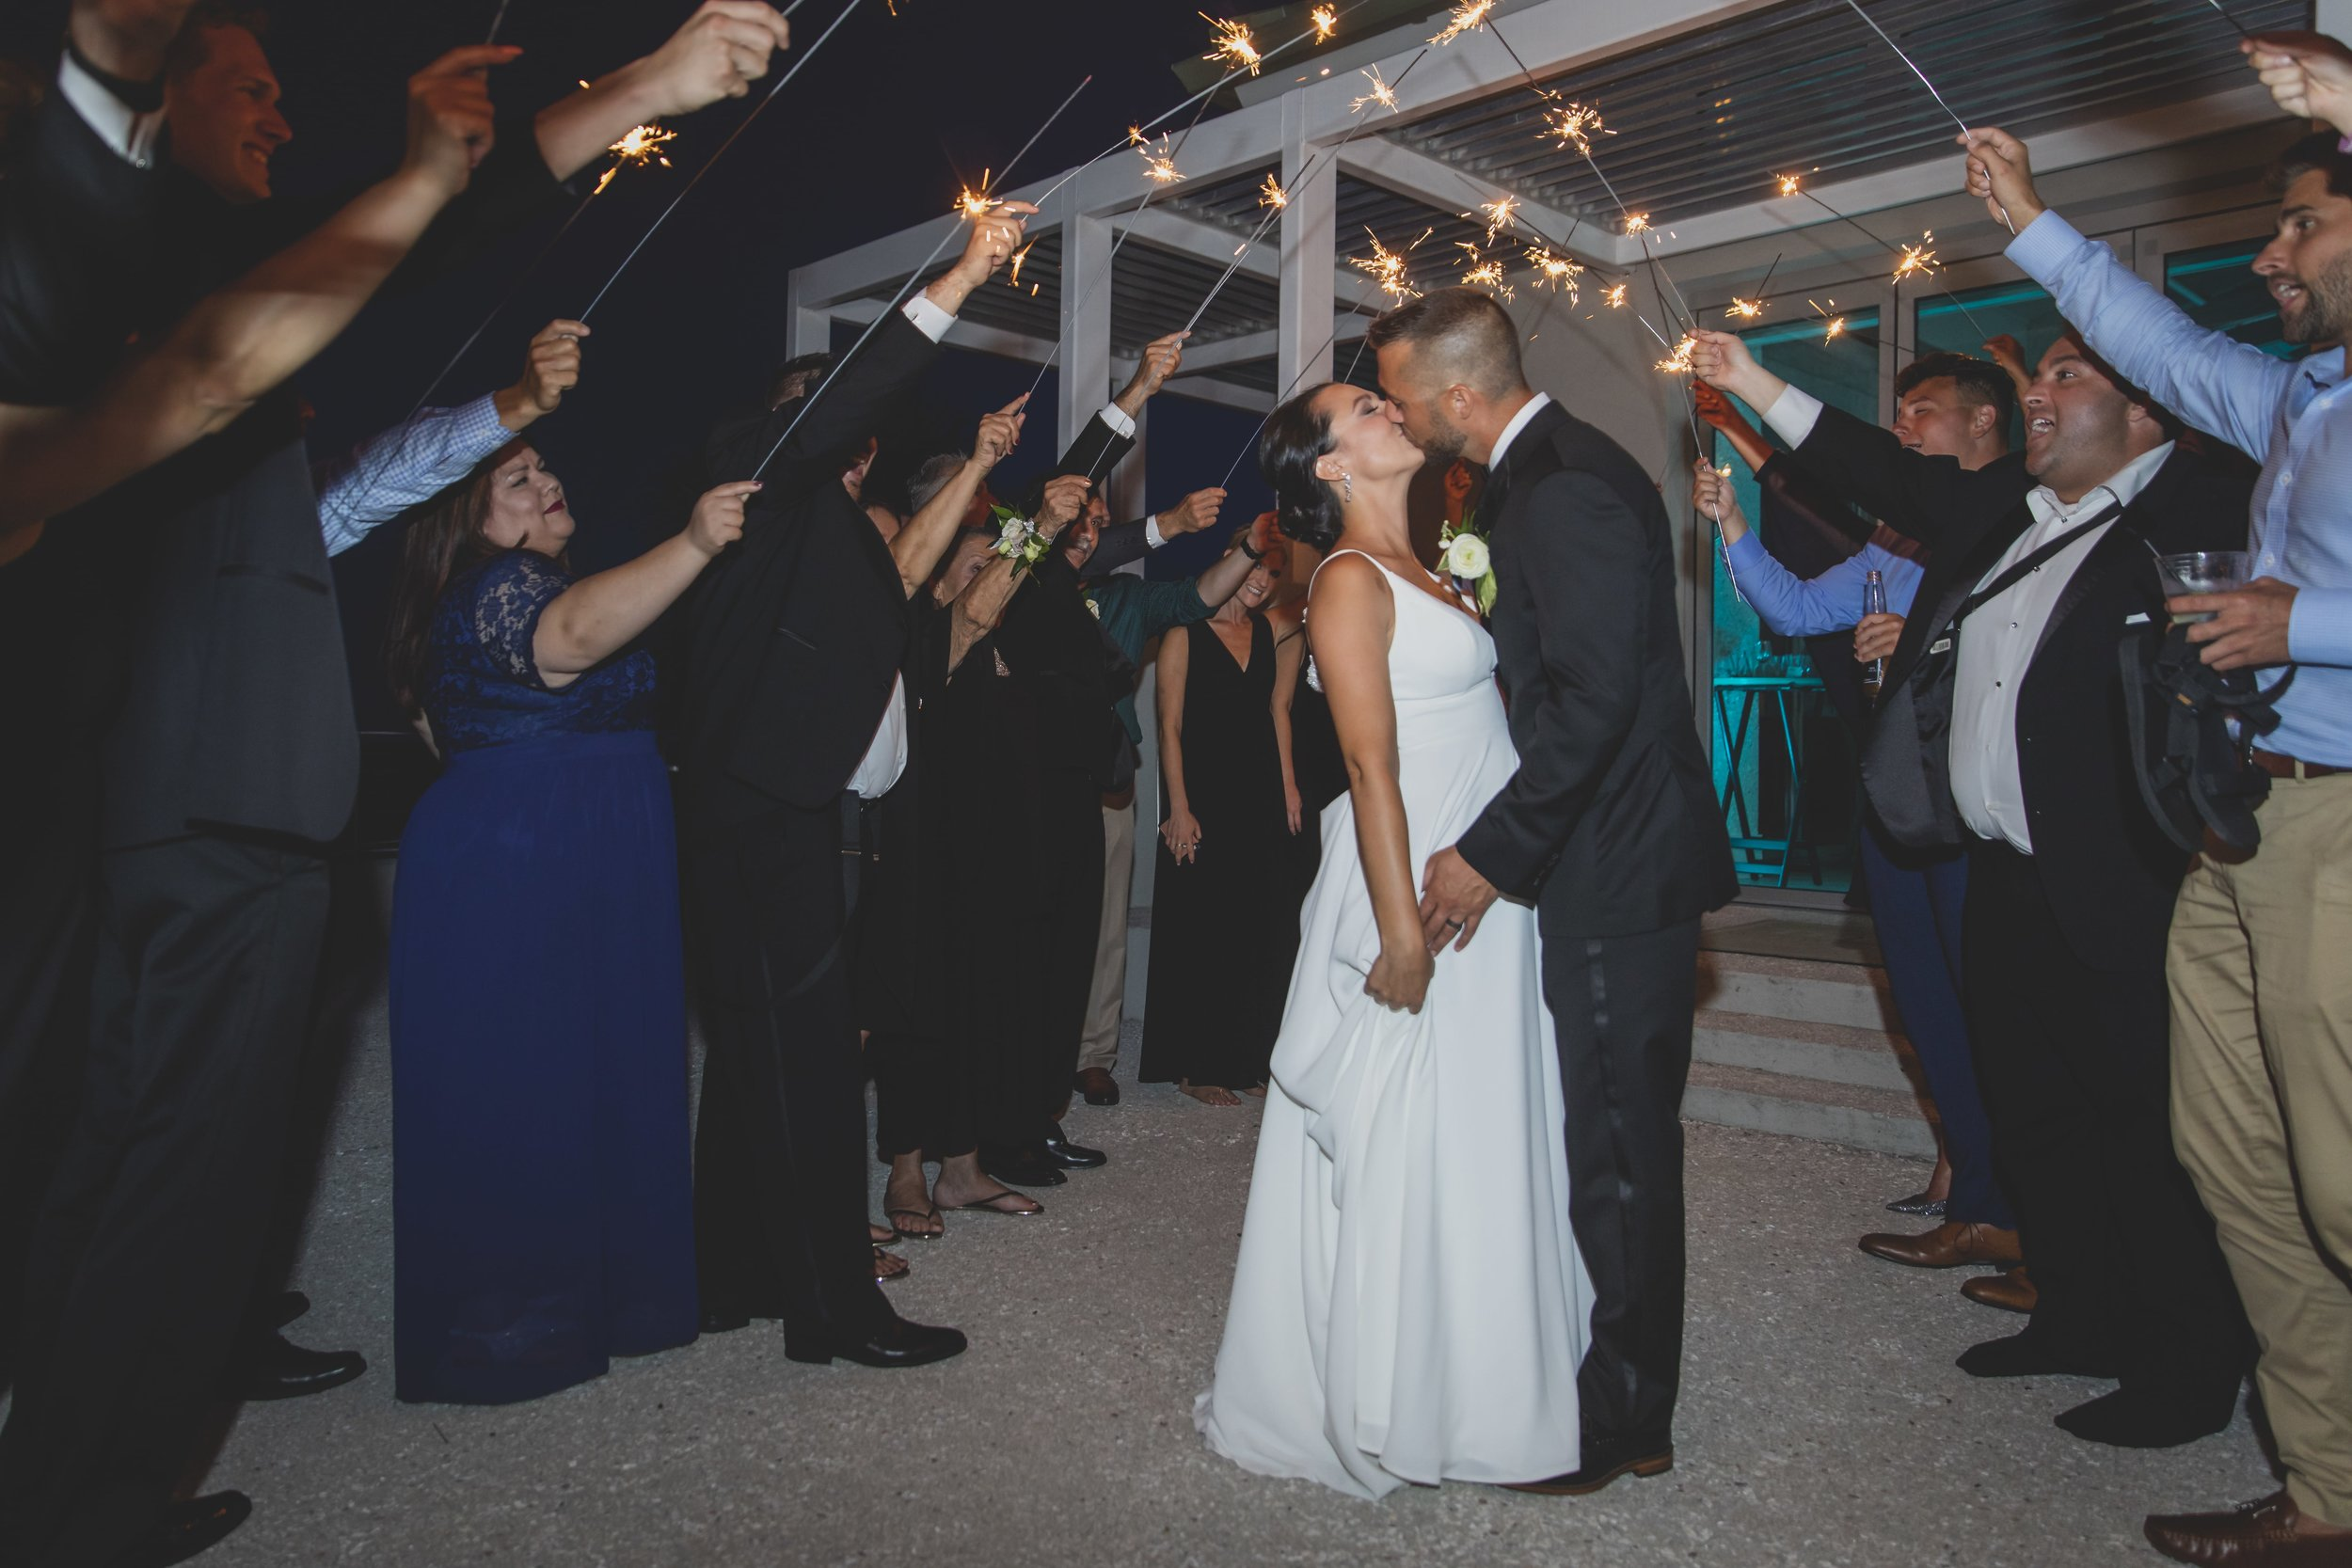 hilton-head-sc-wedding-photography-sparkler-exit